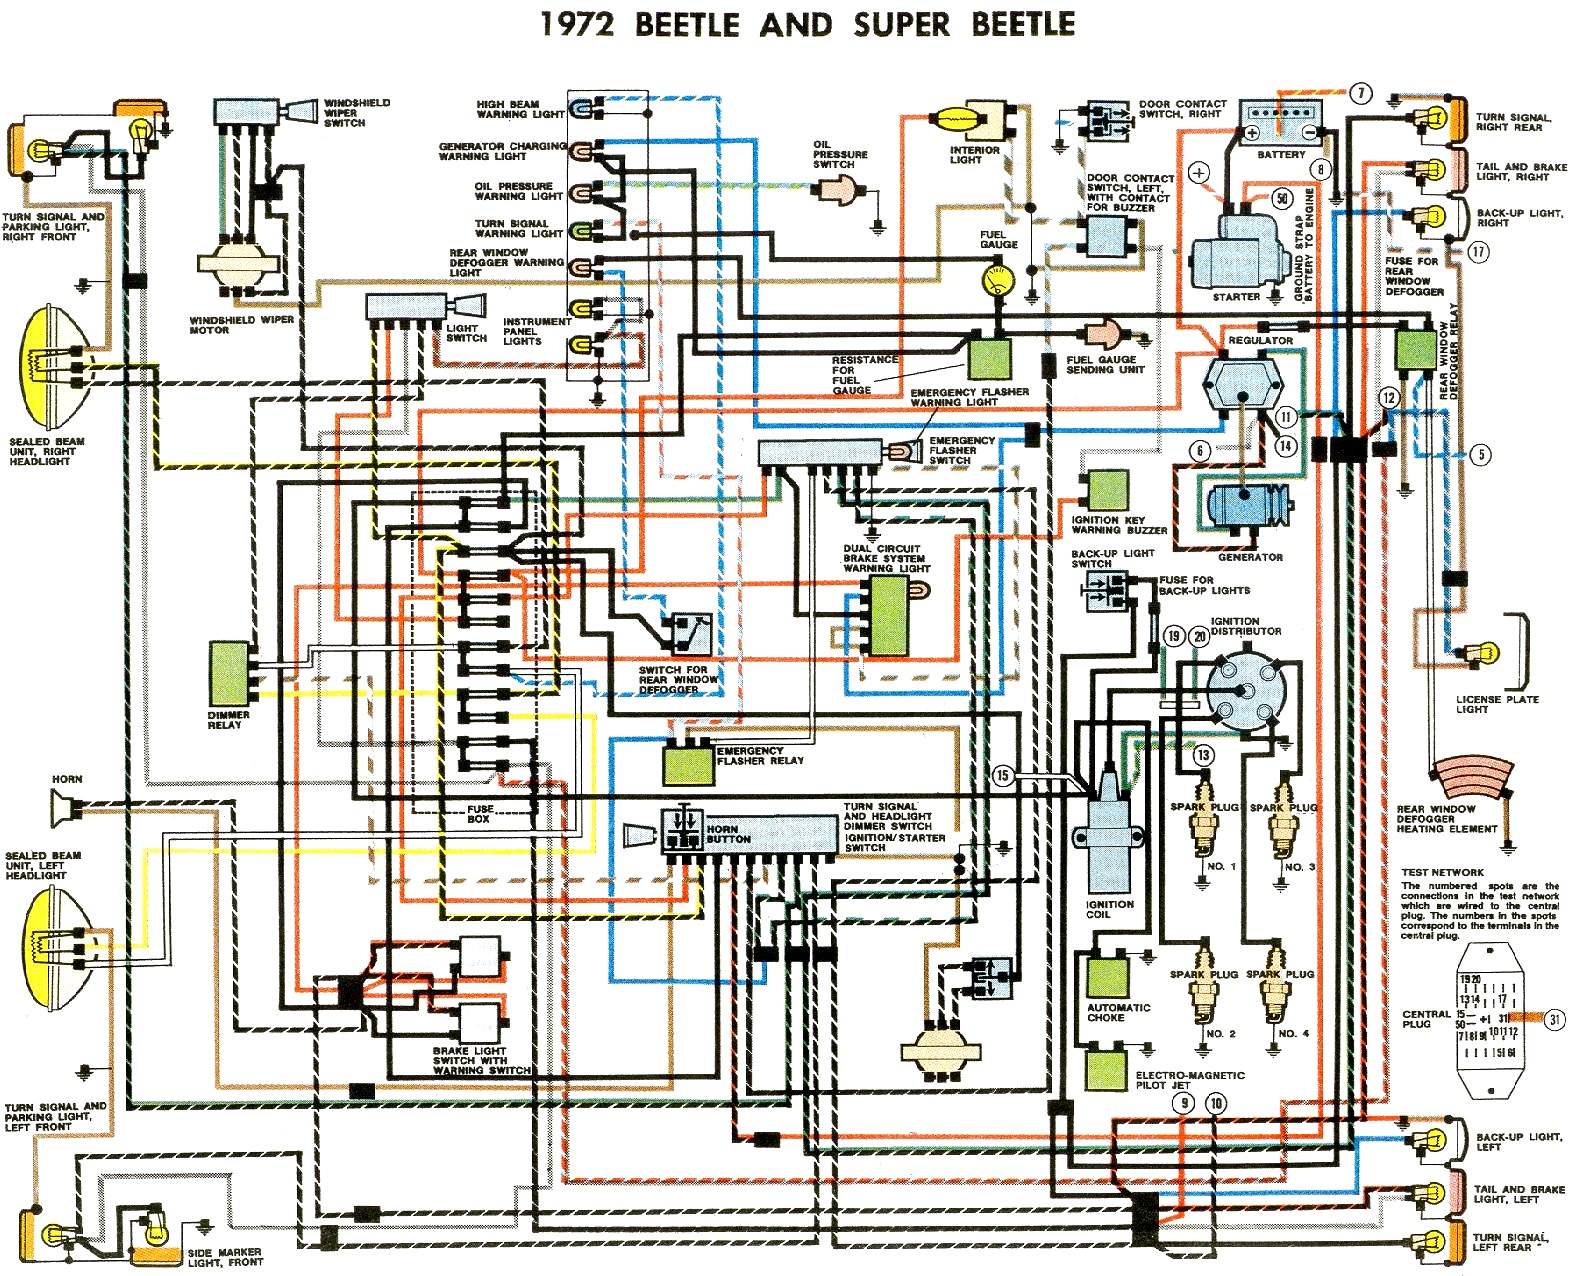 1965 Chevy Wiring Harness Schematic Custom Project Diagram 1az Ecm Wire 2003 1972 Beetle Thegoldenbug Com